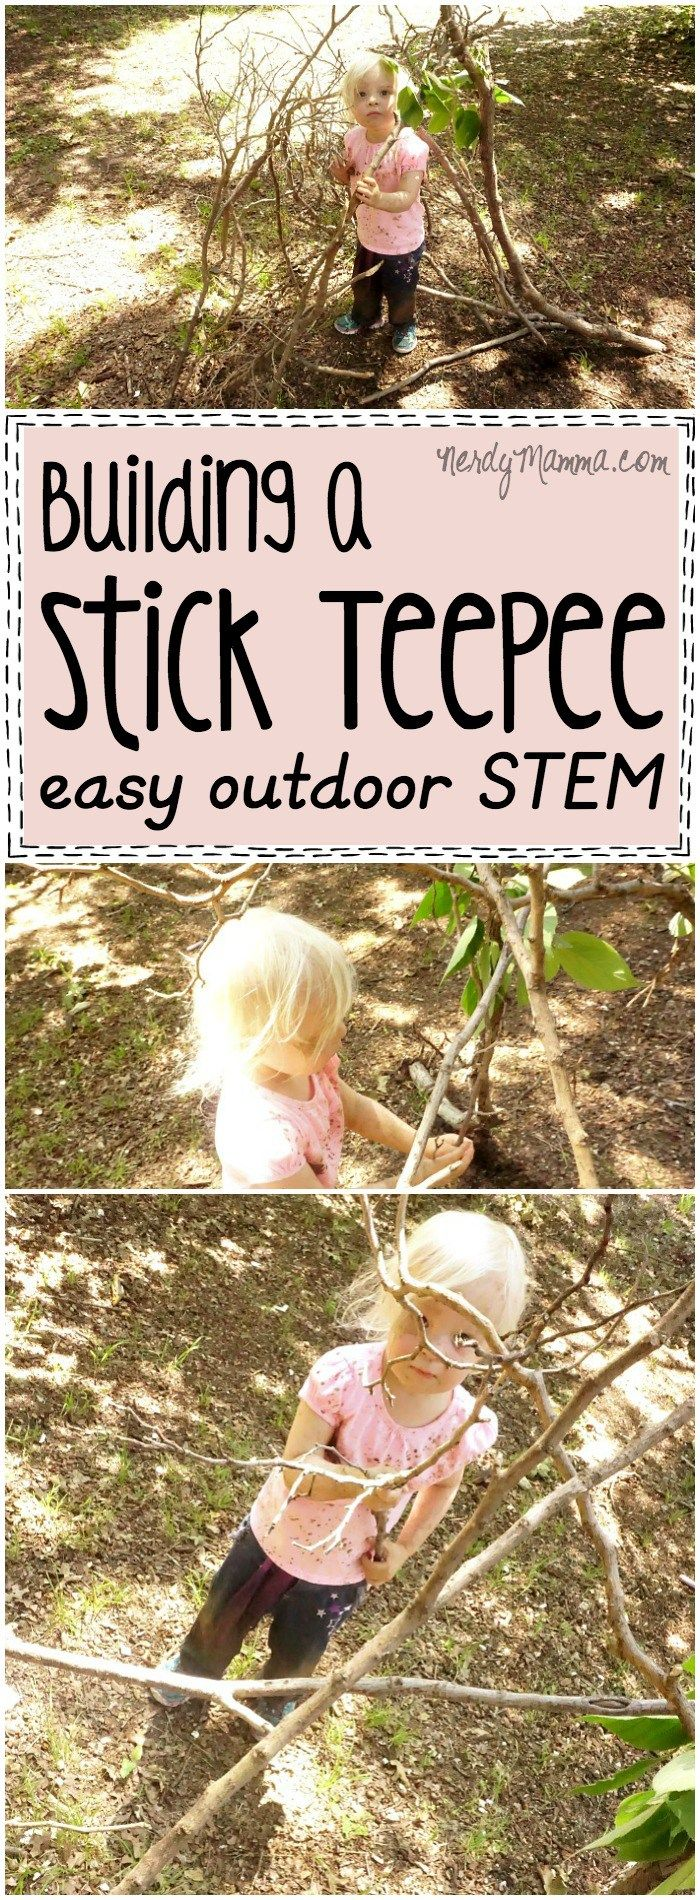 Building a Stick TeePee Simple Outdoor STEM Invitation to